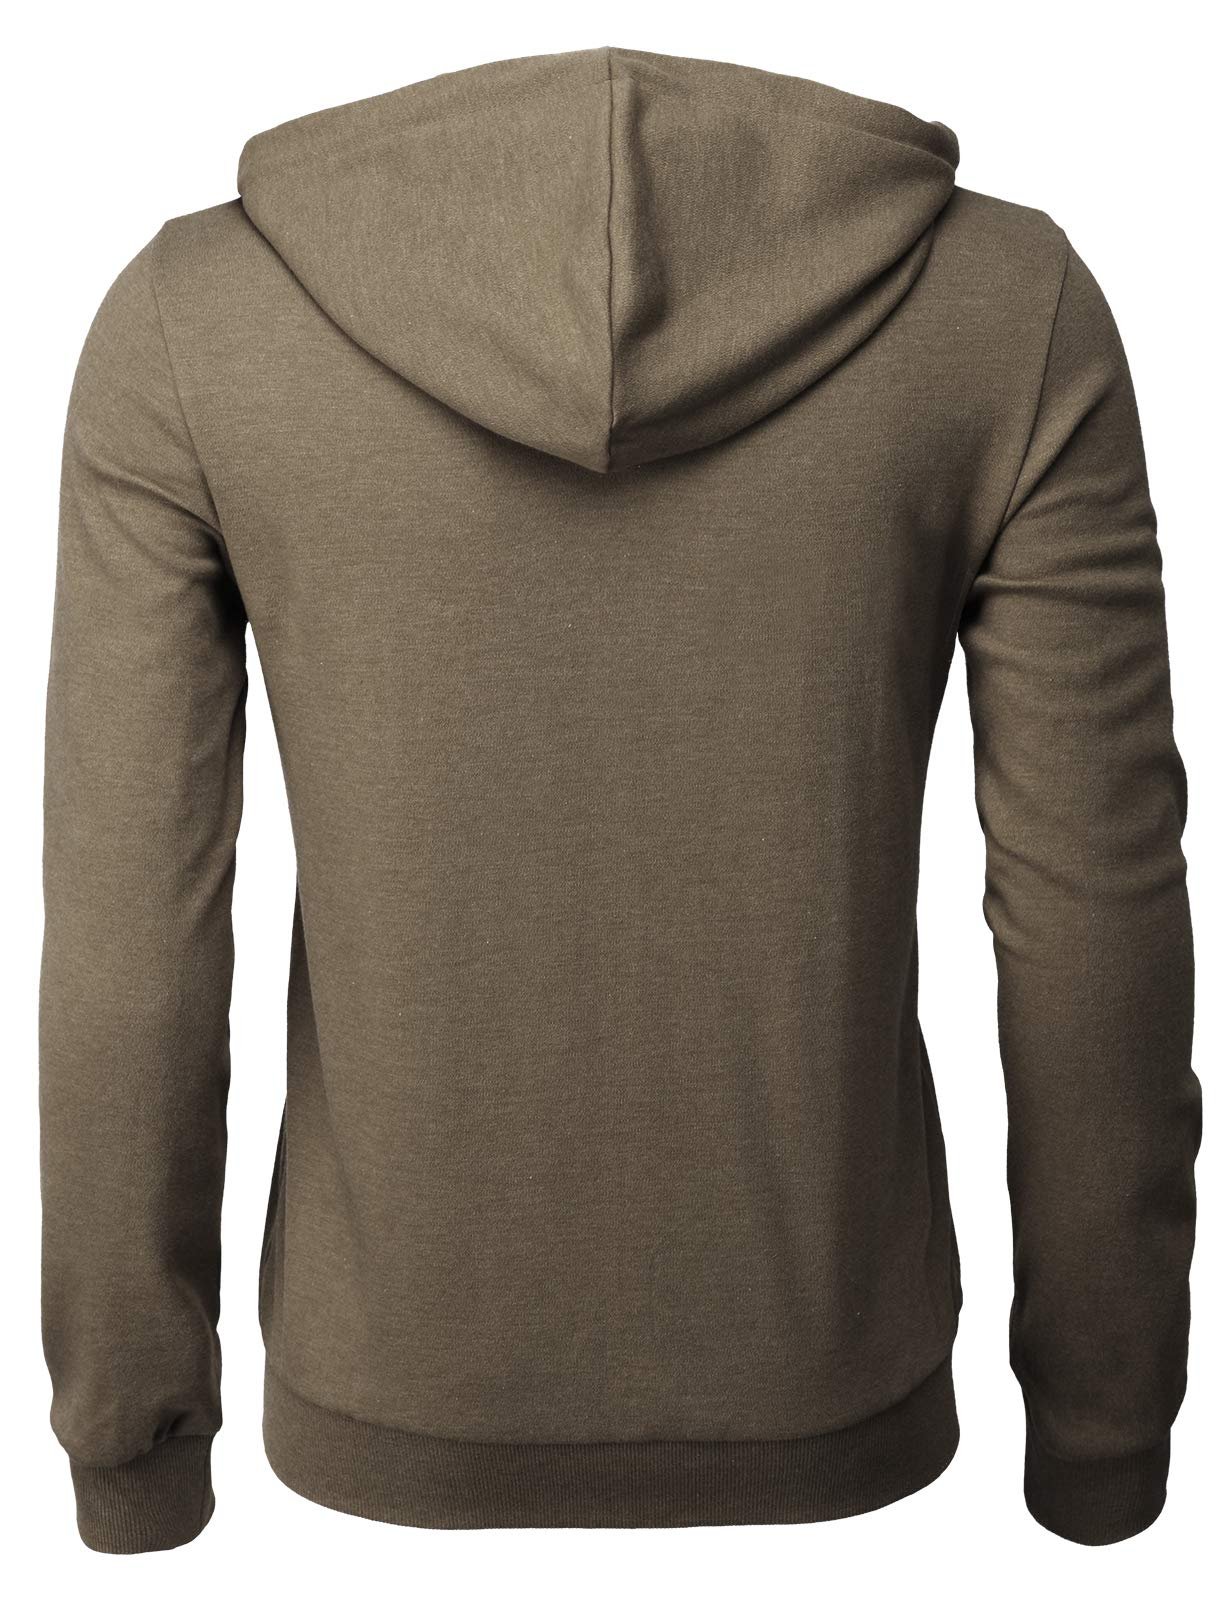 H2H Mens Casual Zip up Hoodie Basic Long Sleeve Zip up HEATHERBROWN US 2XL/Asia 3XL (CMOHOL048) by H2H (Image #3)